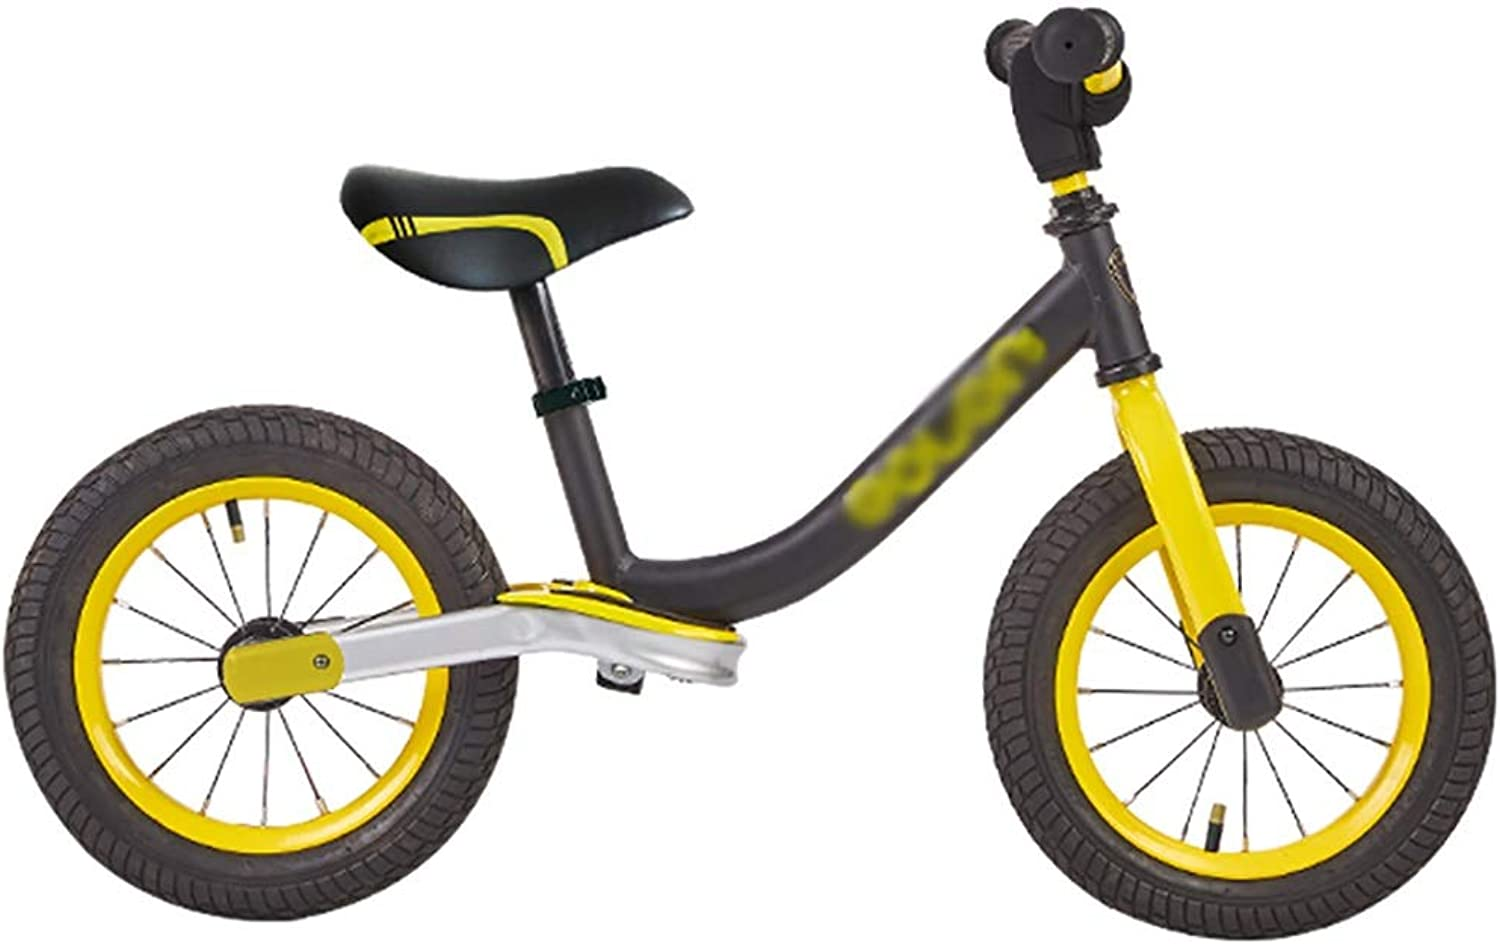 Balance Bikes Yellow, Toddler Kids Balance Training Bike, Air Tires, No Pedal - 2, 3, 4, 5 Year Olds